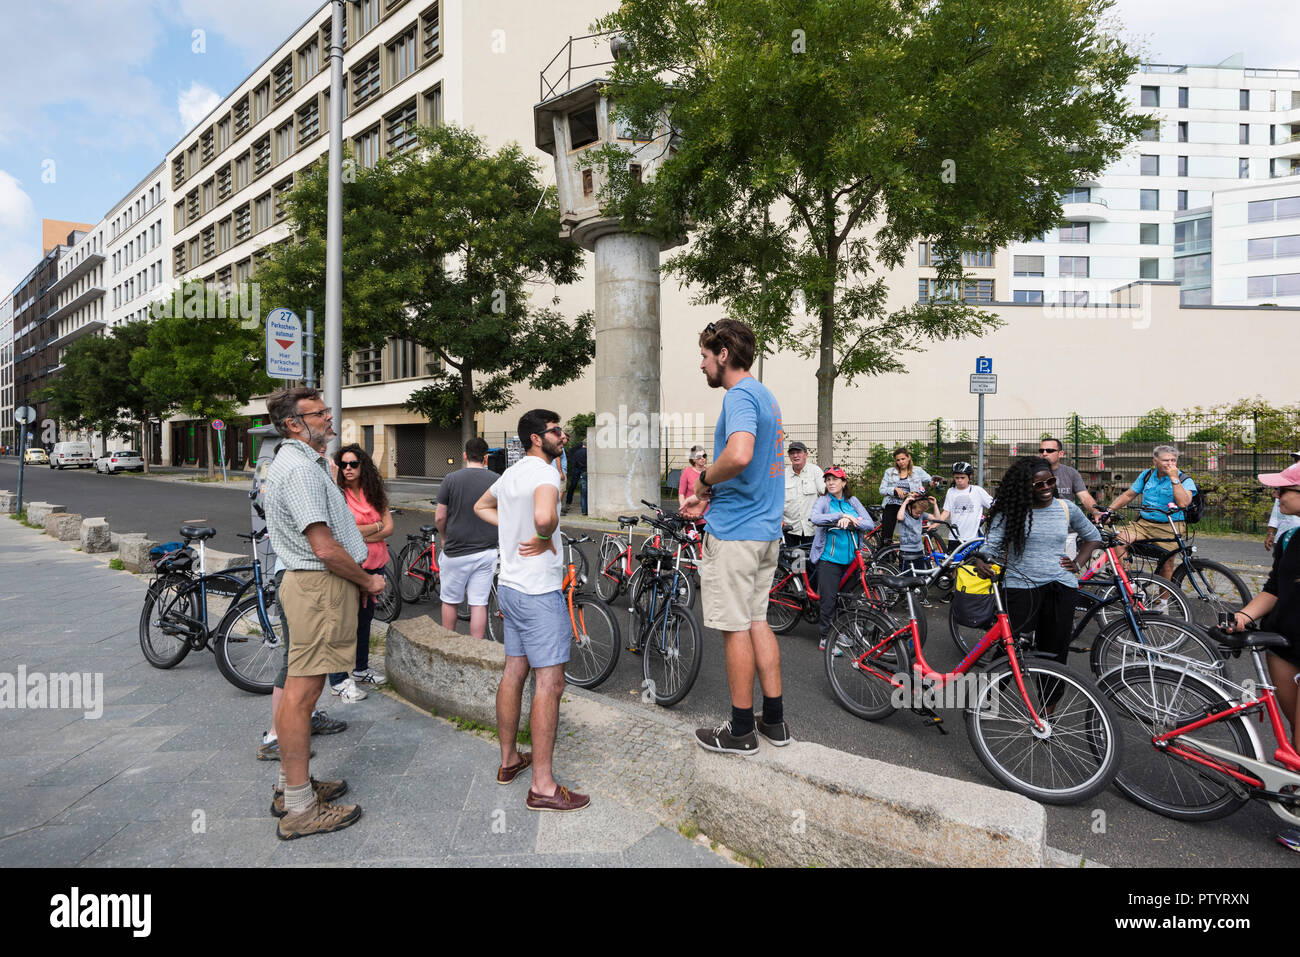 Berlin. Germany. Tourists visit the former border watchtower on Erna Berger Straße near Potsdamer Platz. - Stock Image